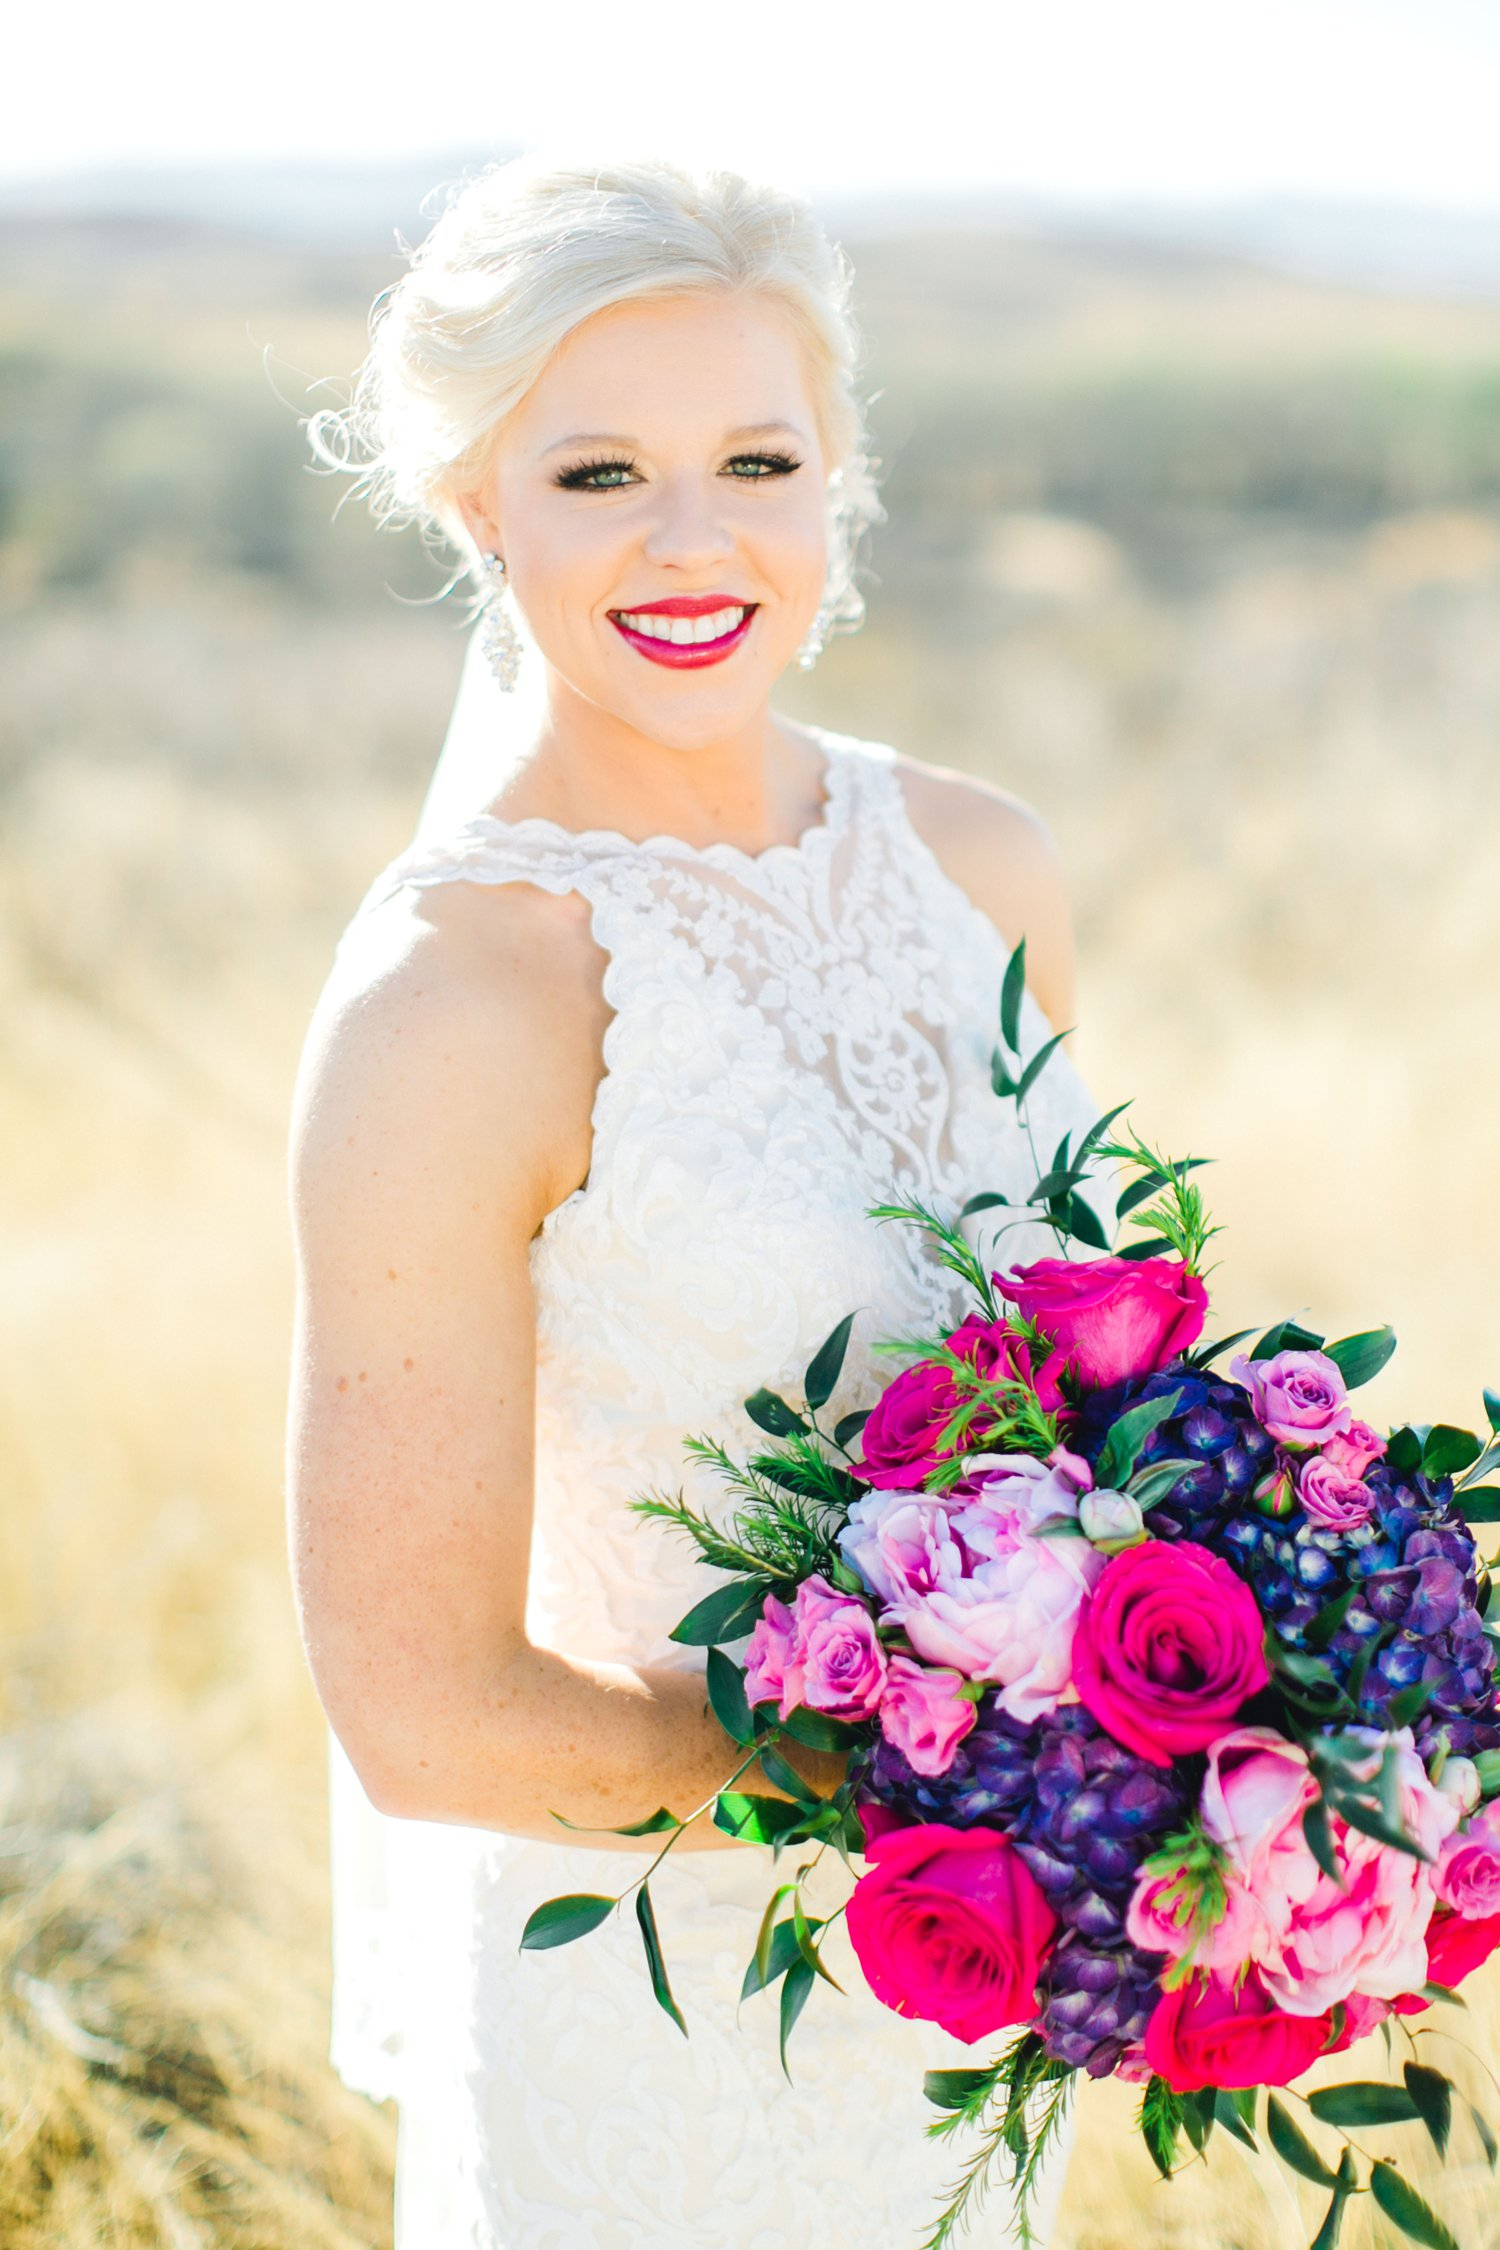 Jenna-evans-bridals-balmorhea-texas-fort-davis-wedding-photographer-lubbock-photographer__0004.jpg